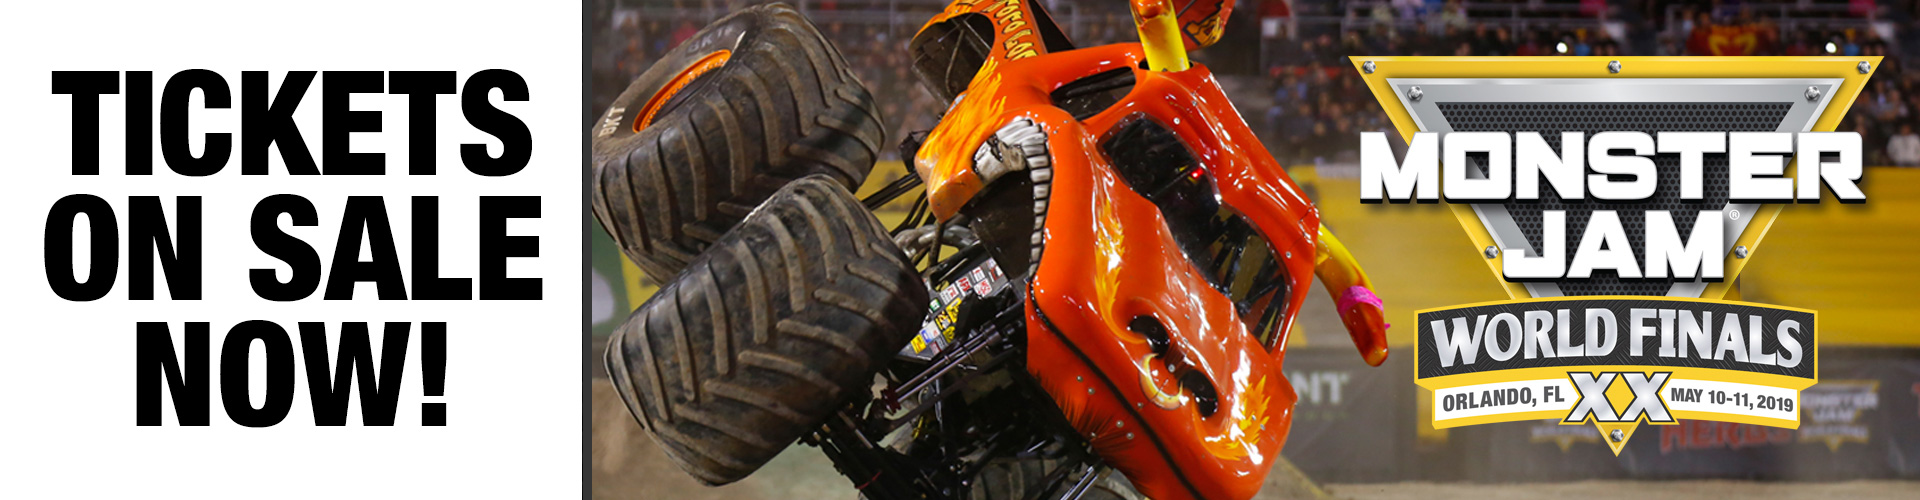 Monster Jam World Finals XX Tickets On Sale Now